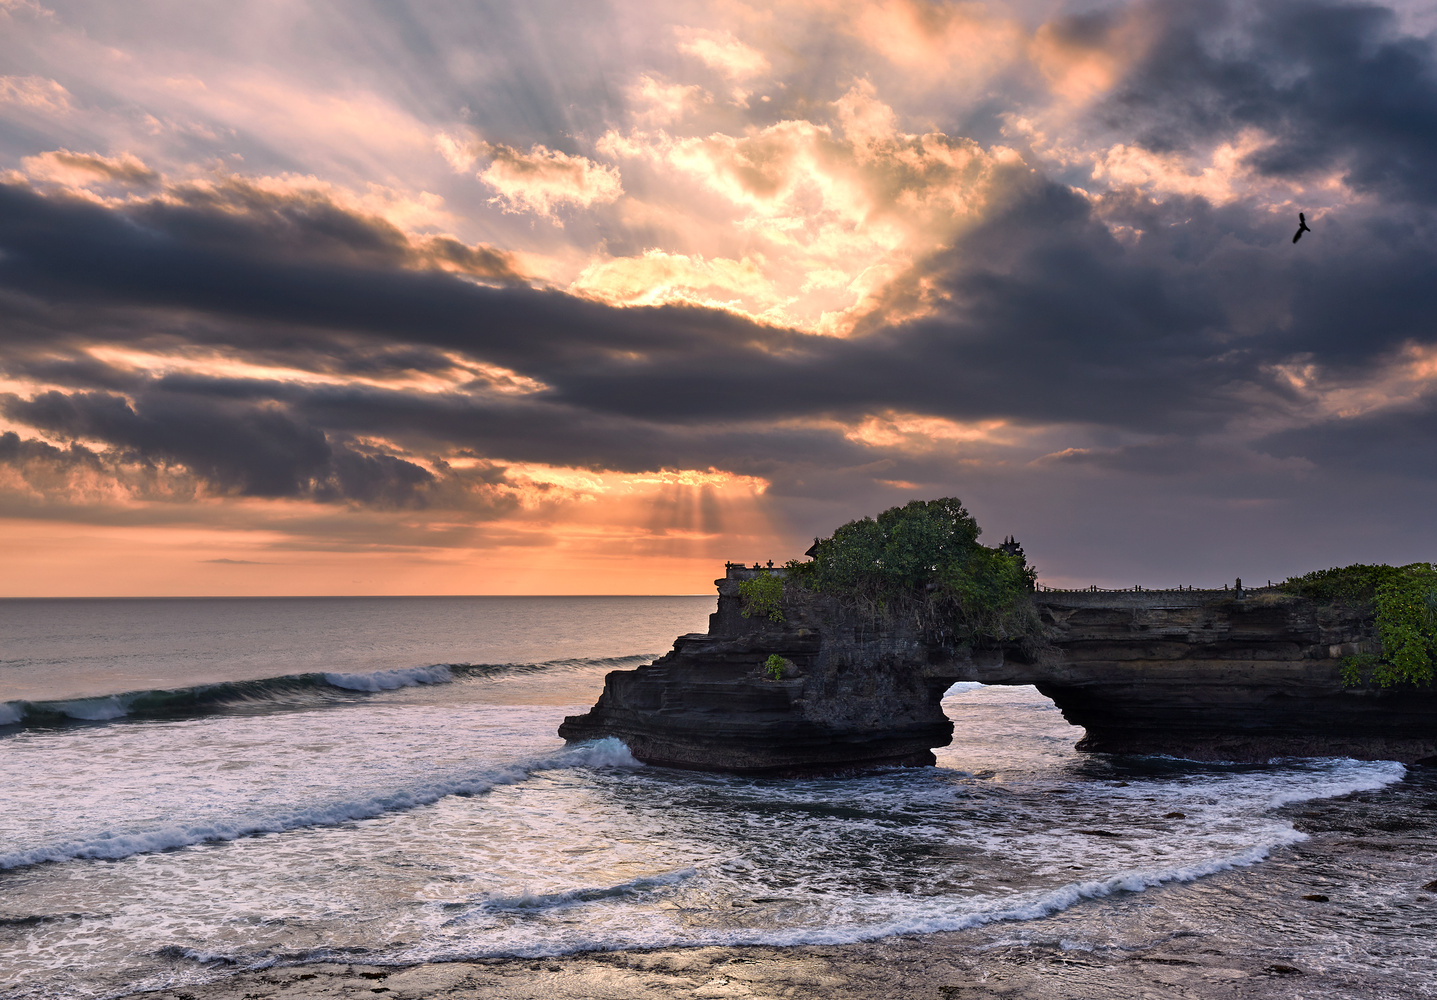 Exploding sunset - Tanah Lot Temple by Kevin Gewinner